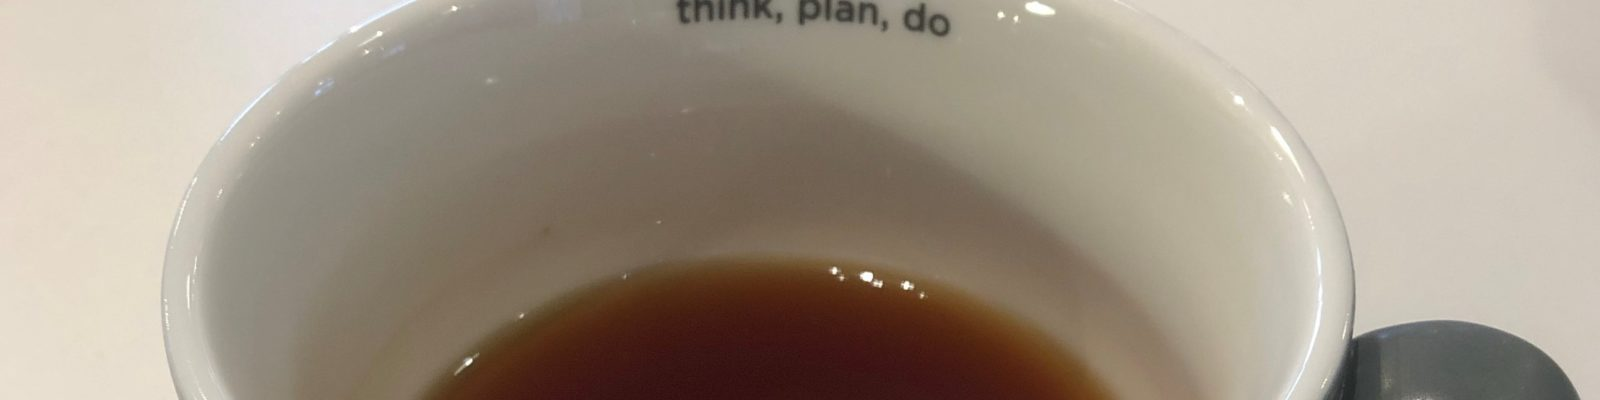 think plan do cup